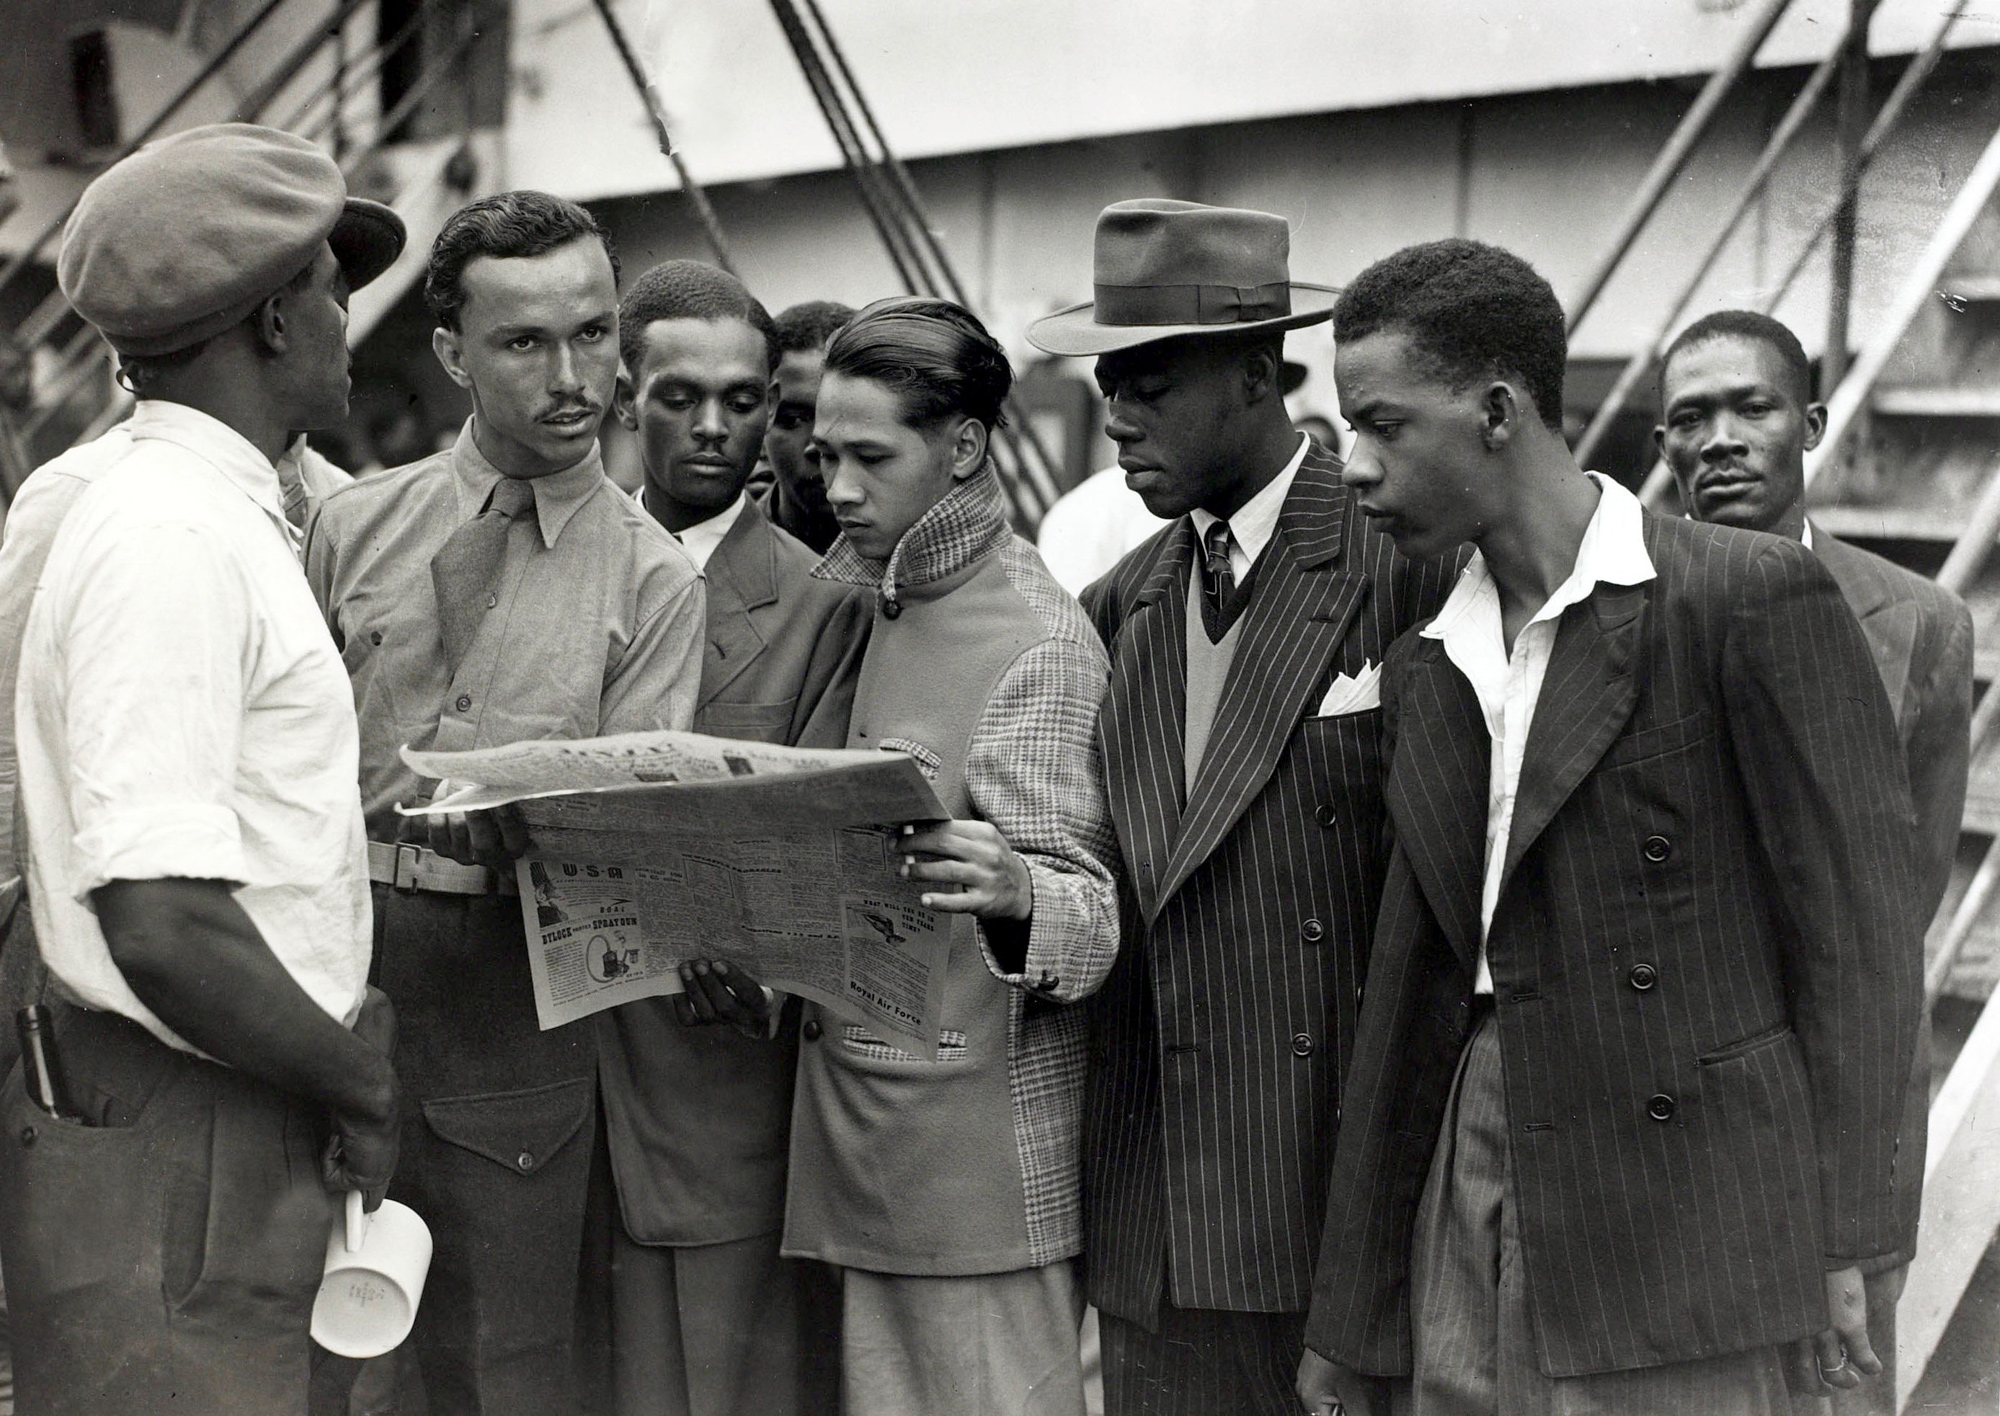 Black and white photograph of a group of Caribbean men reading a newspaper at Tilbury docks